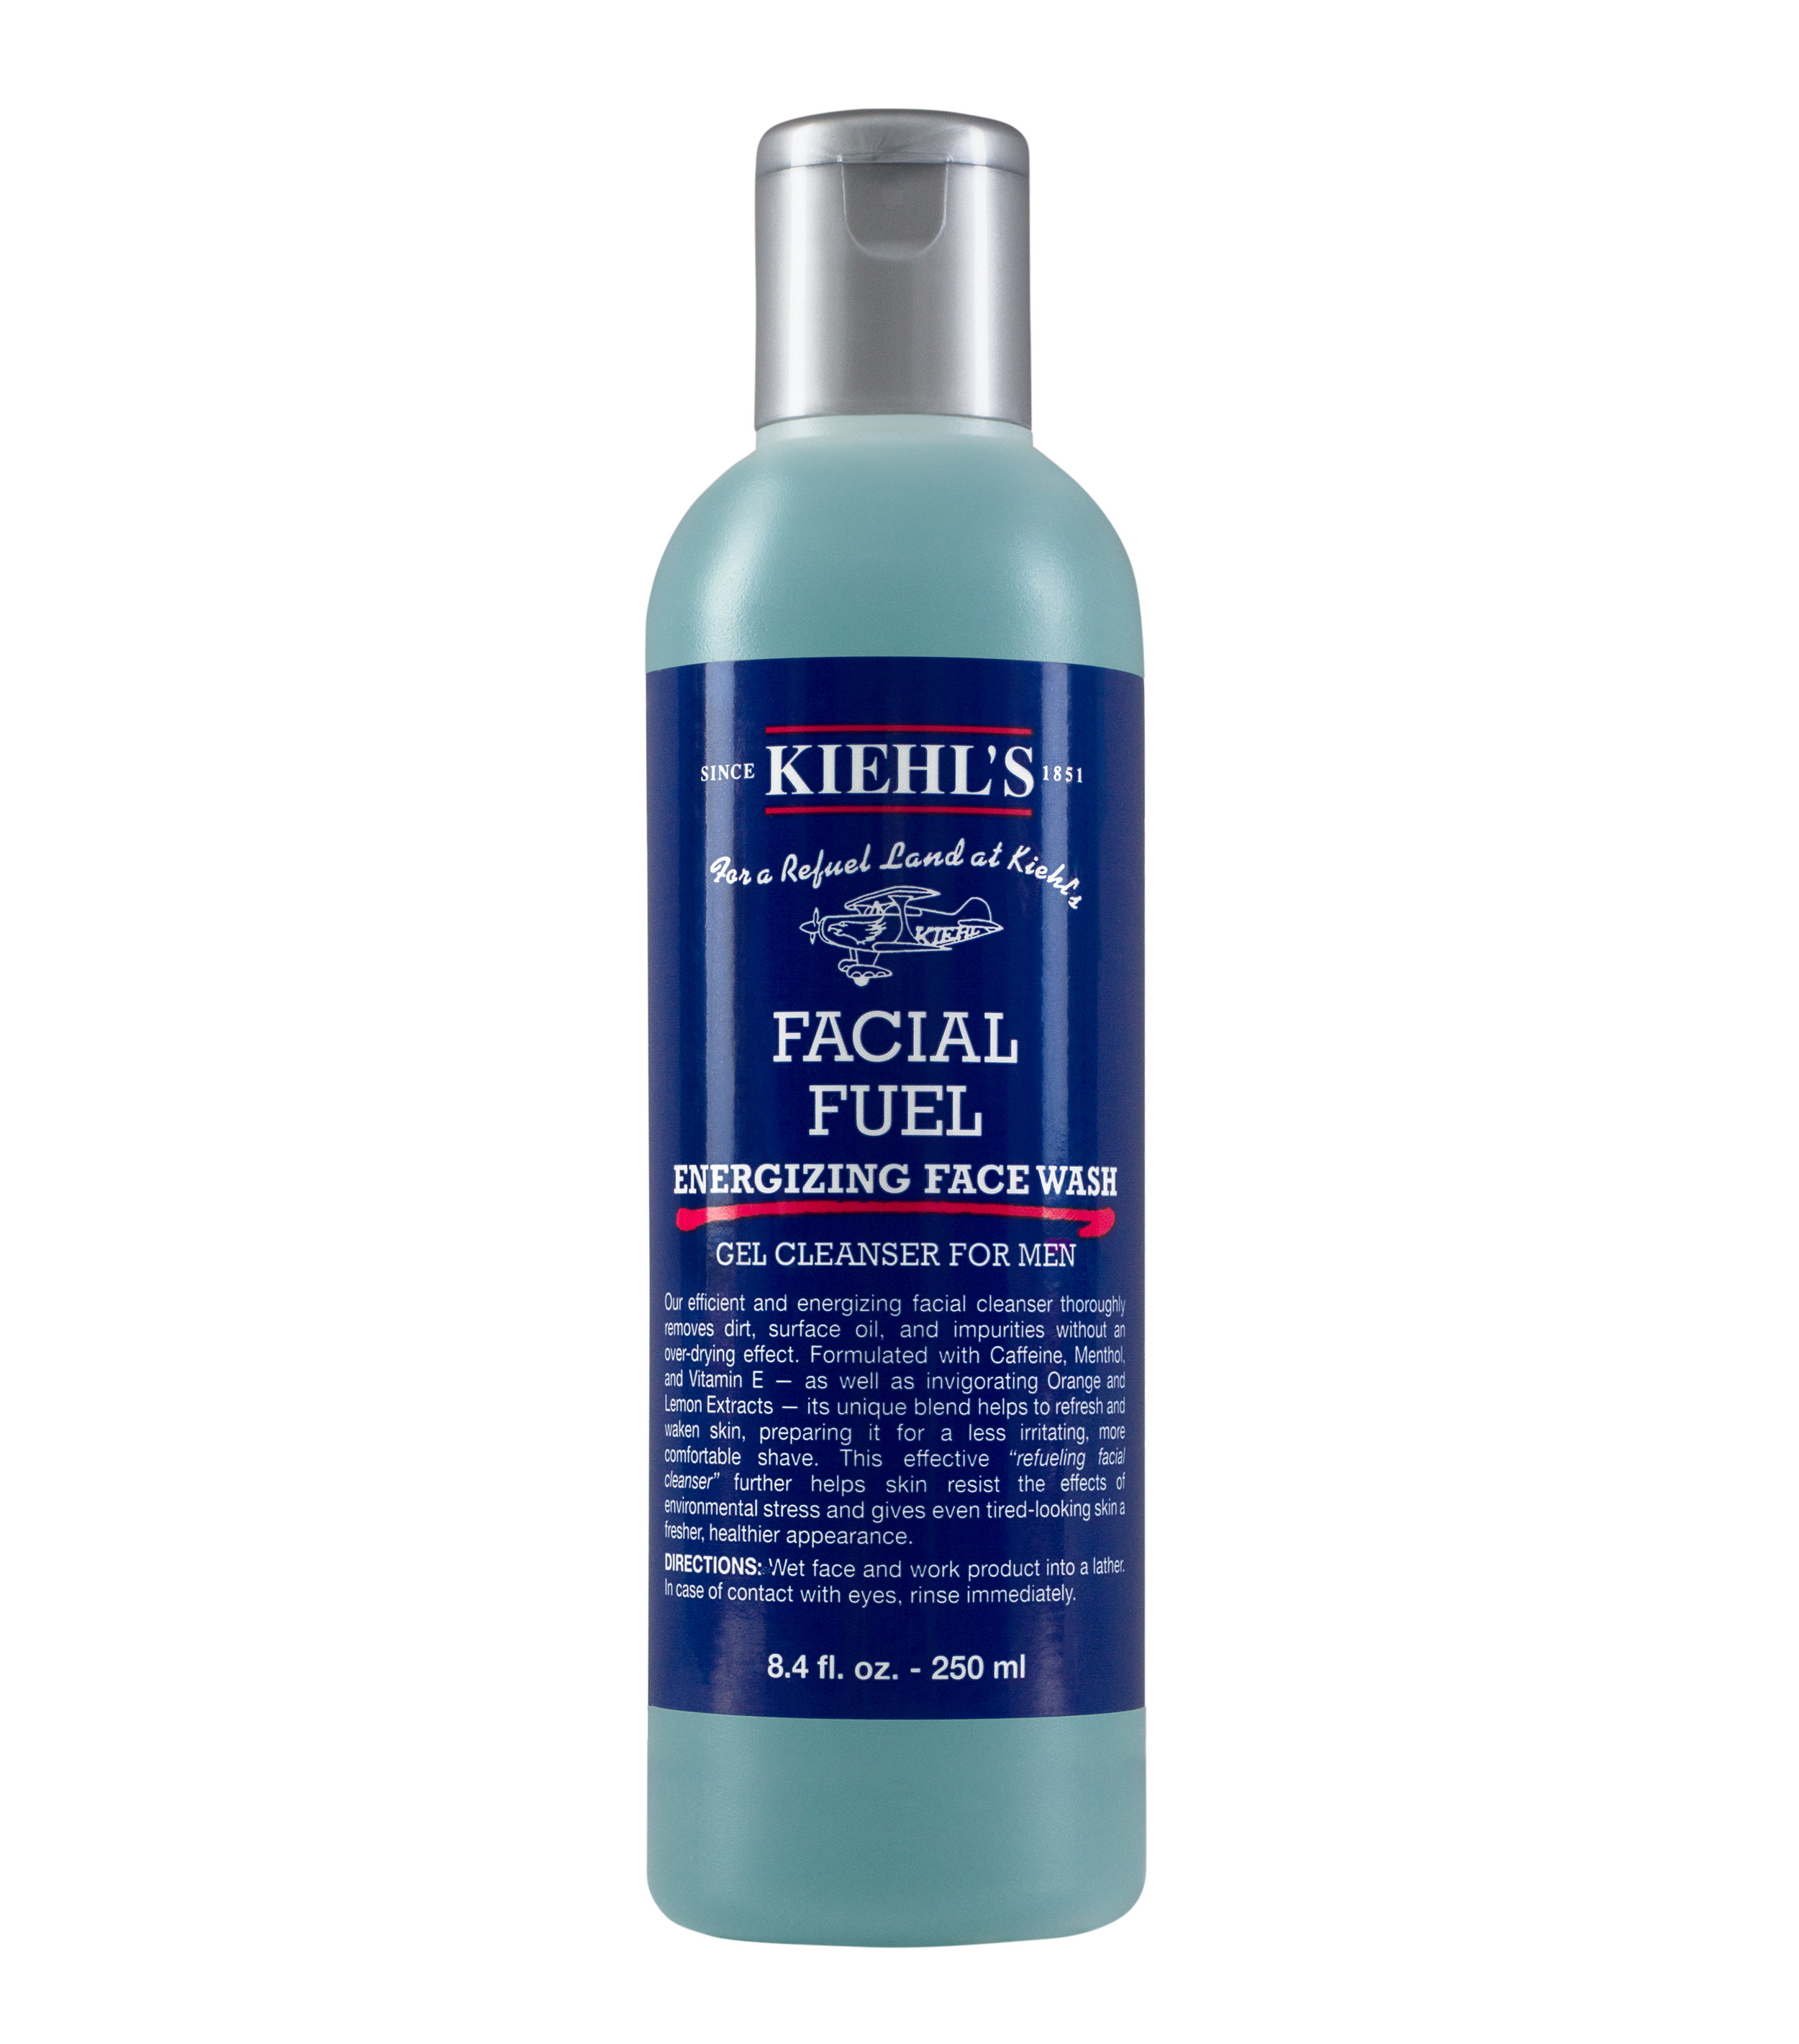 Facial_Fuel_Energizing_Face_Wash_3700194719159_8.4fl.oz..jpg